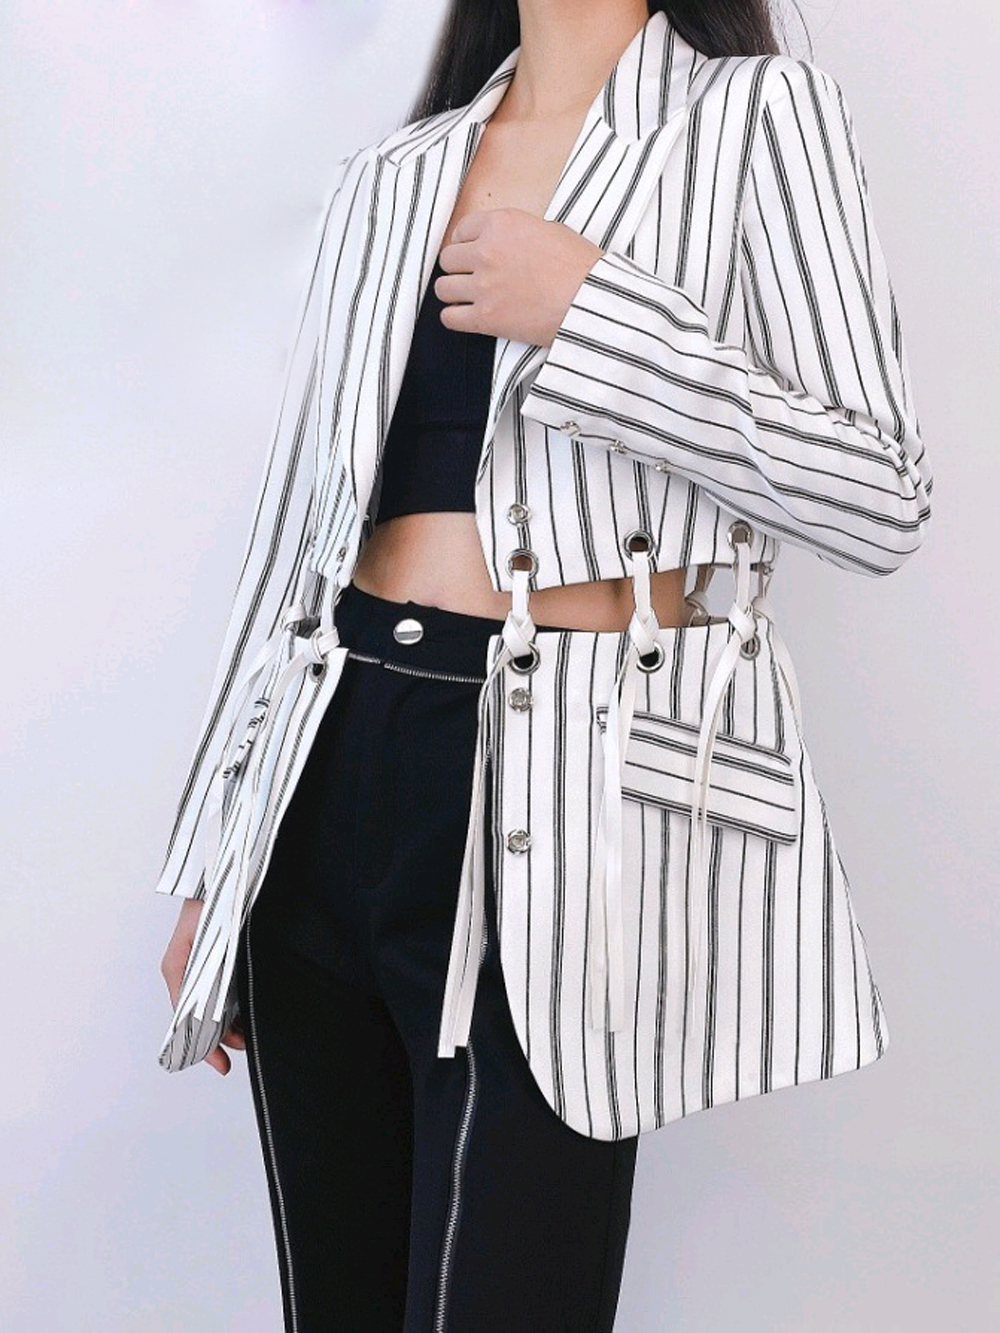 Spring Summer Blazers 2020 High-end Women Suits Blazers Stripes Lace-up Connect Individual Fashion Blazer Coats